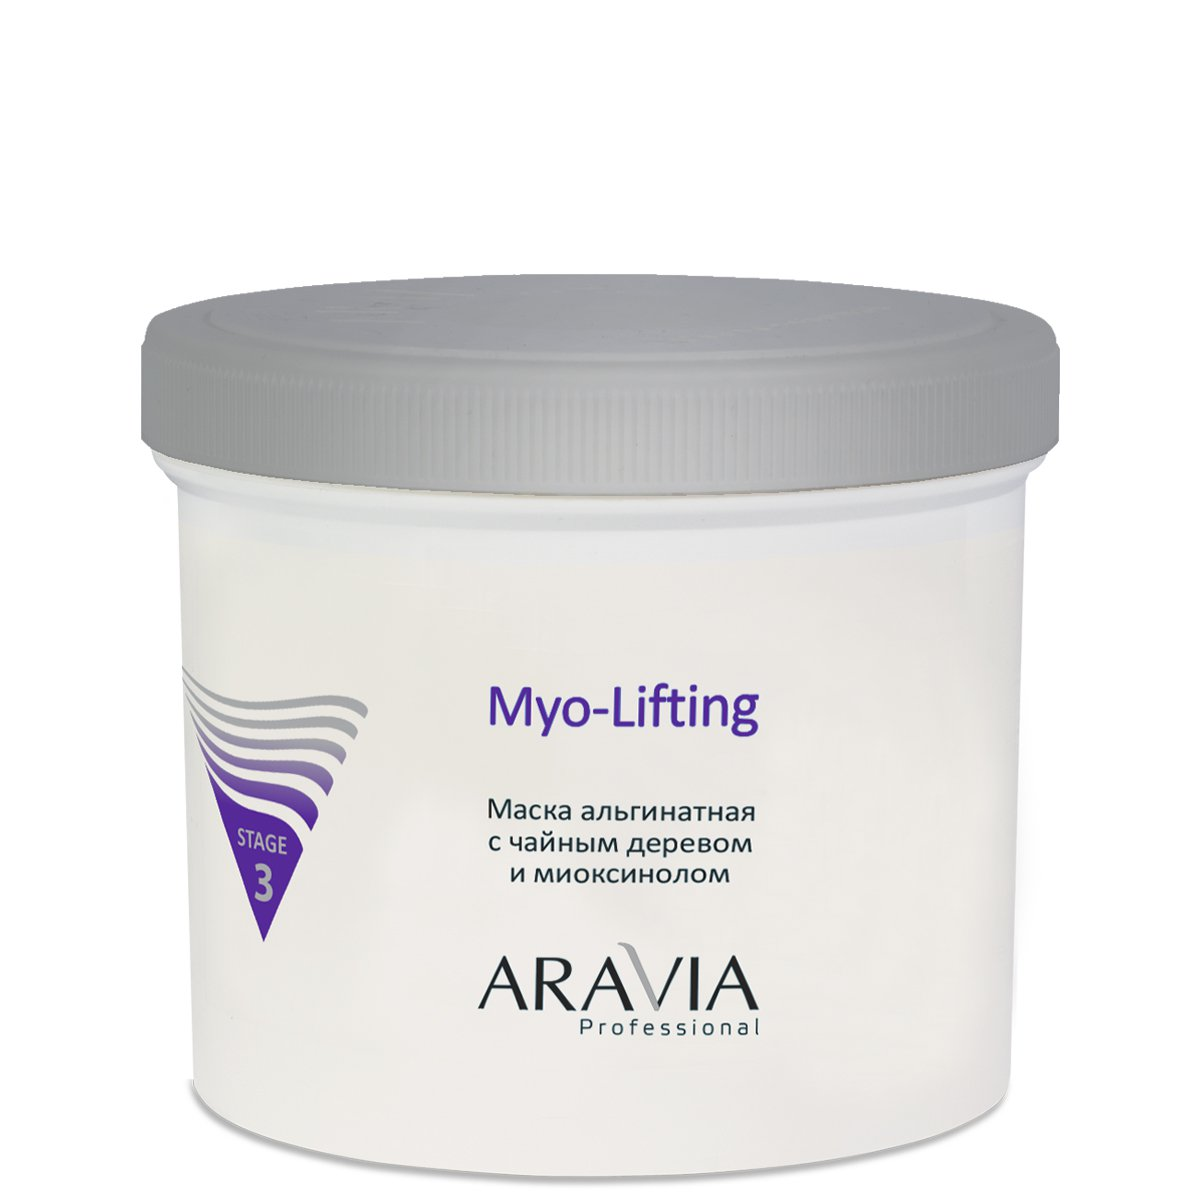 Маска альгинатная с чайным деревом и миоксинолом Aravia Myo-Lifting